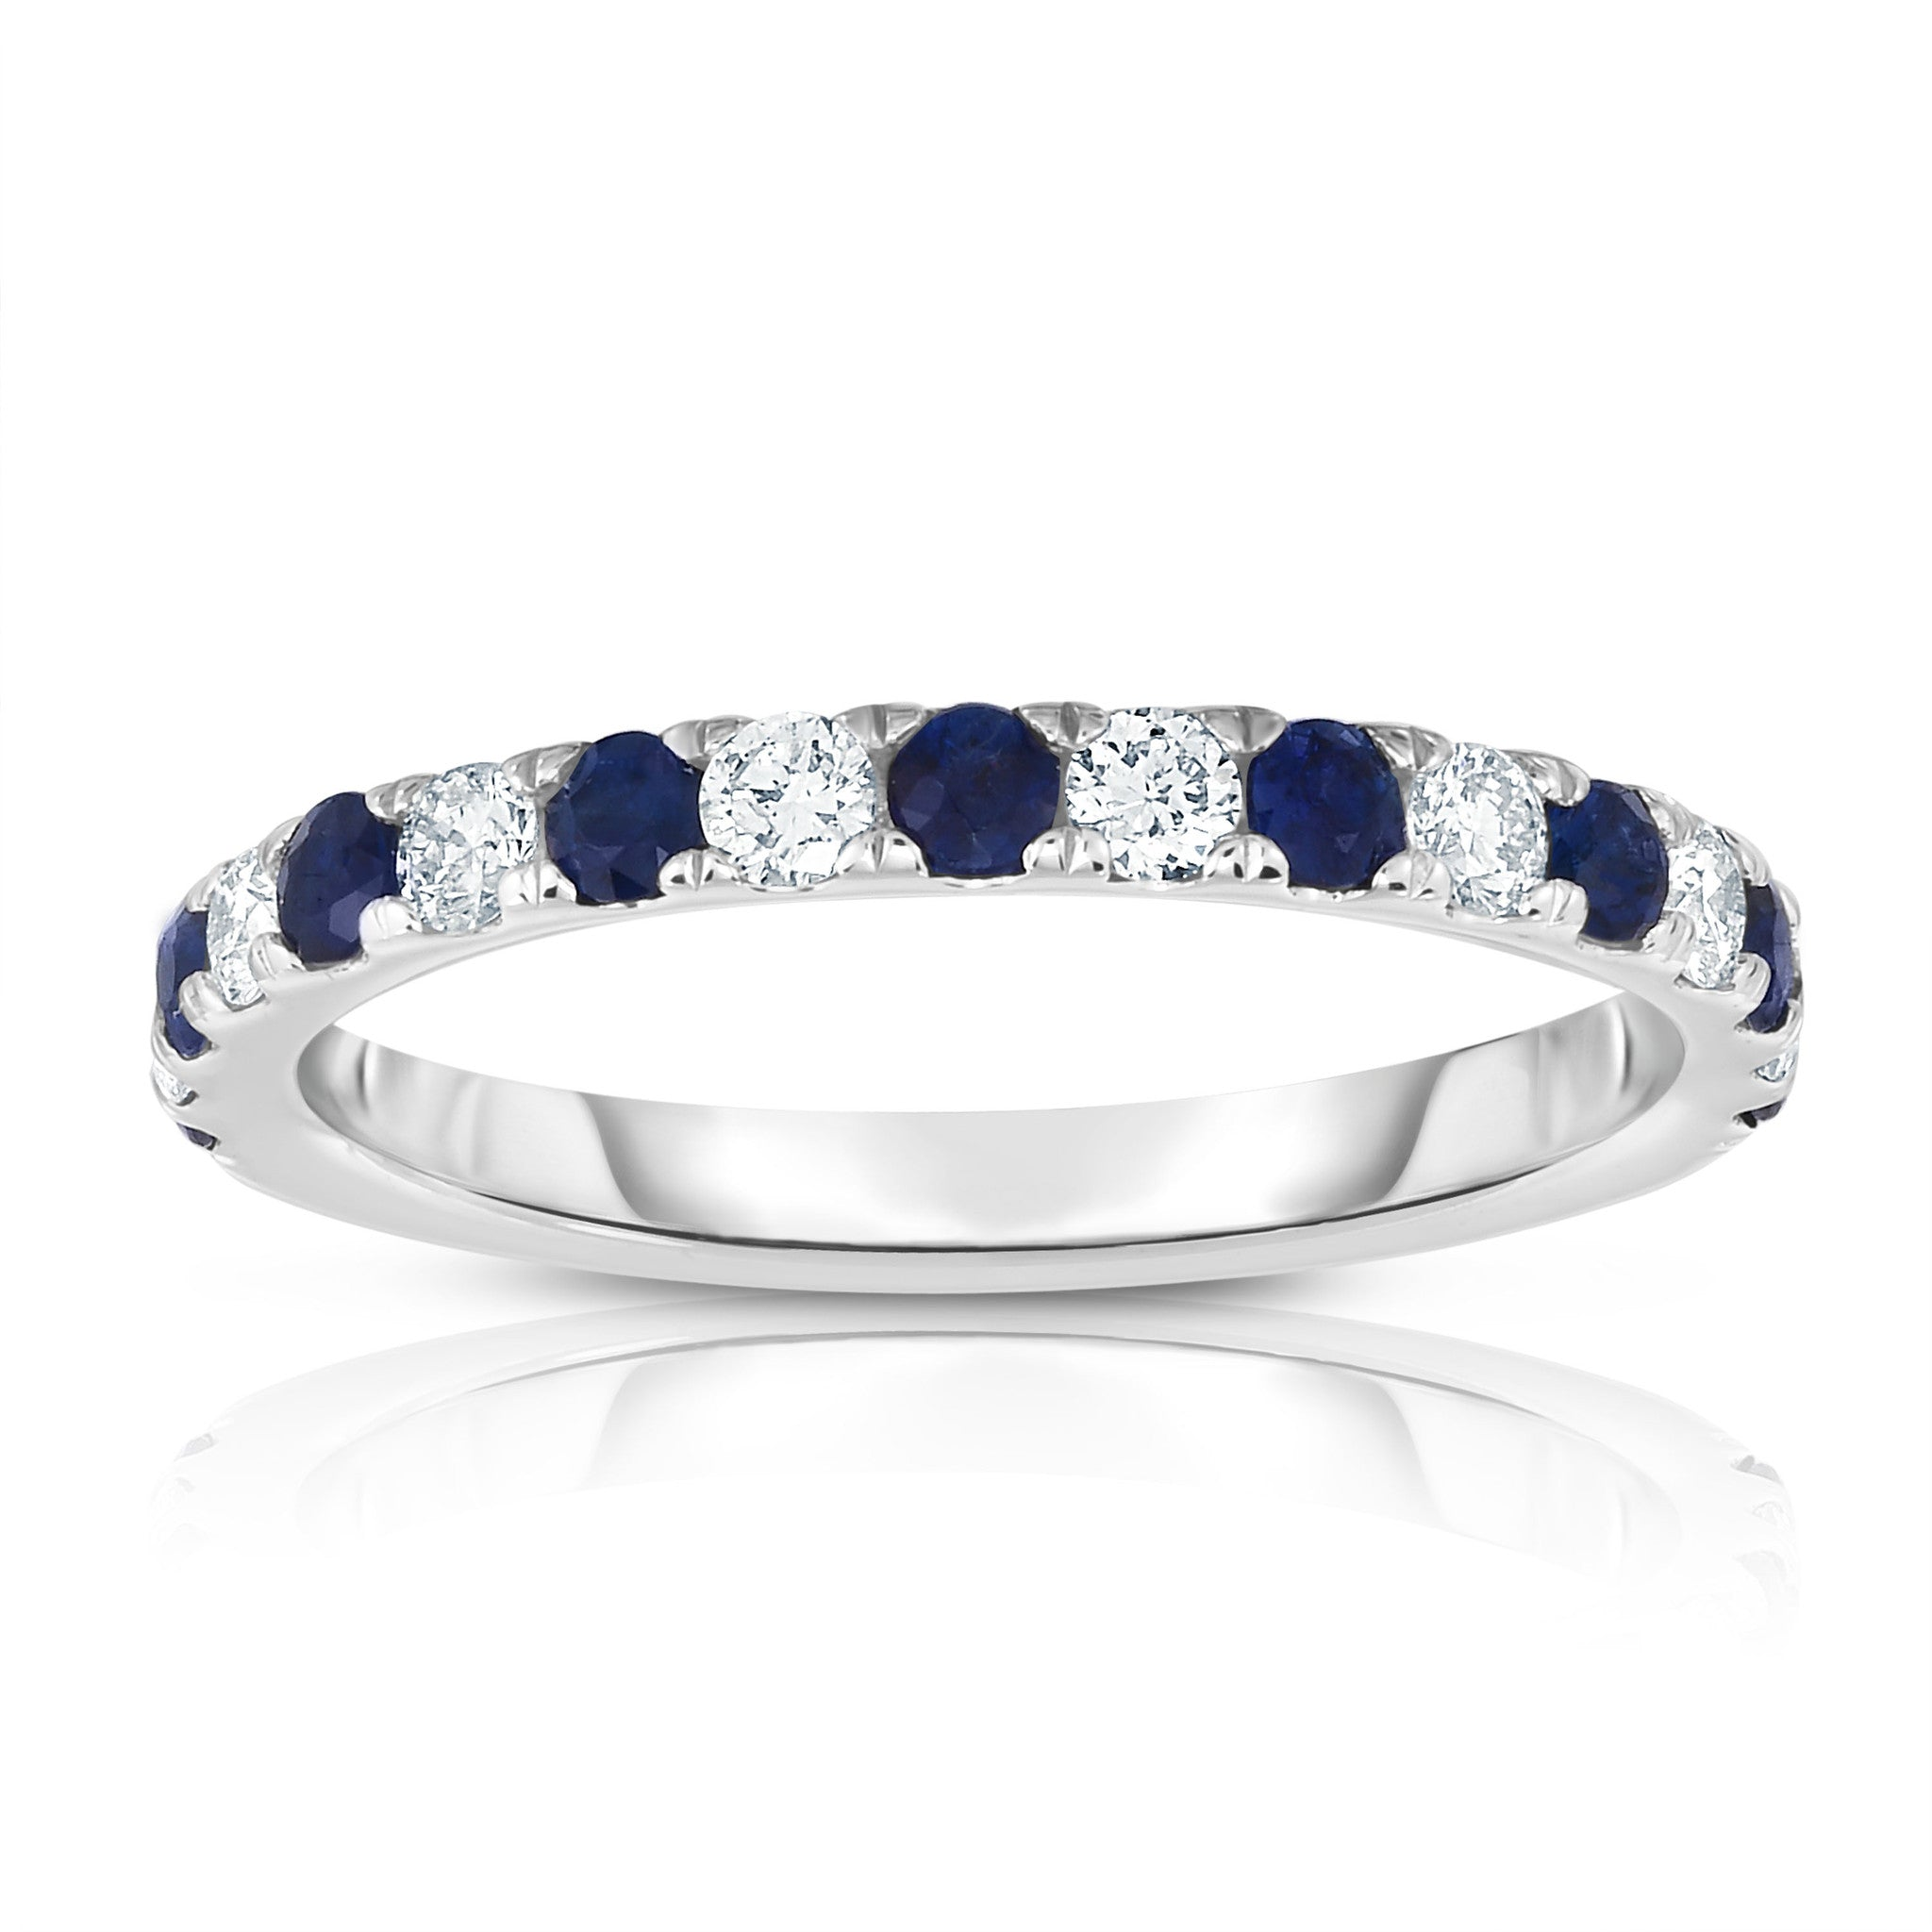 Jewelry & Watches Oval Blue Sapphire Round Diamond Solitaire Ring I1 H 0.30ct Prong Set Solid Gold